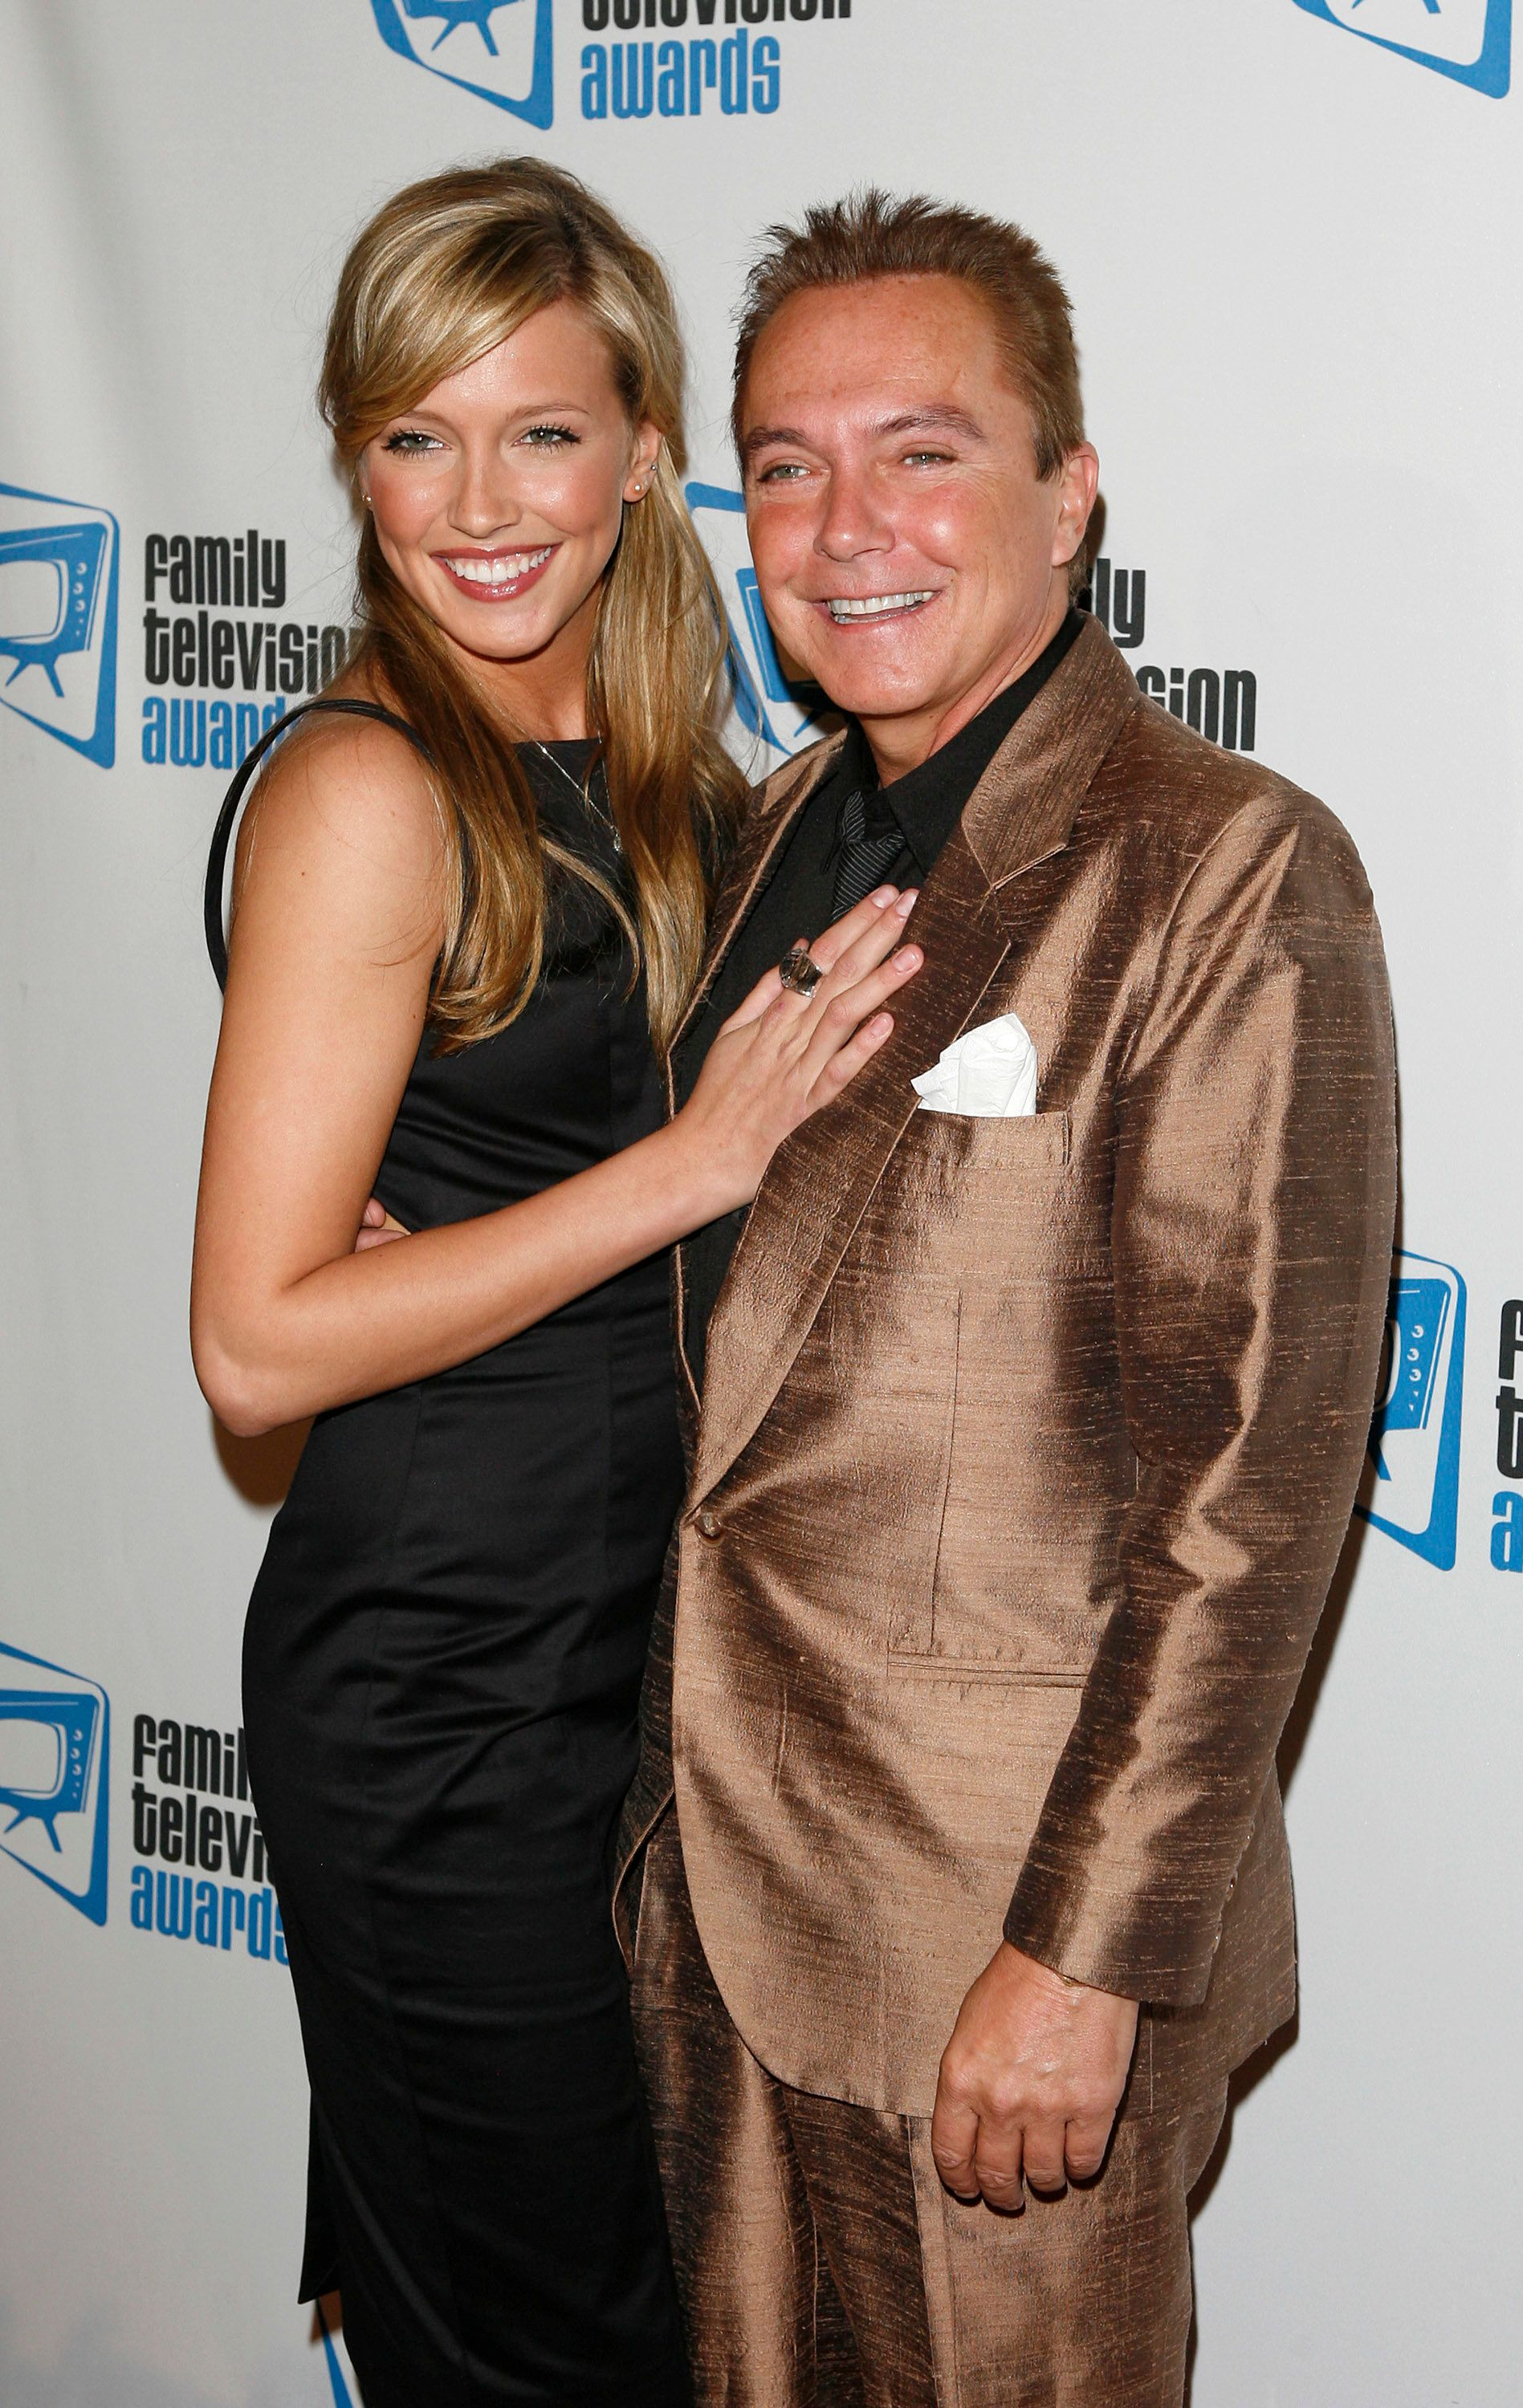 Katie Cassidy and David Cassidy pictured together in 2007.